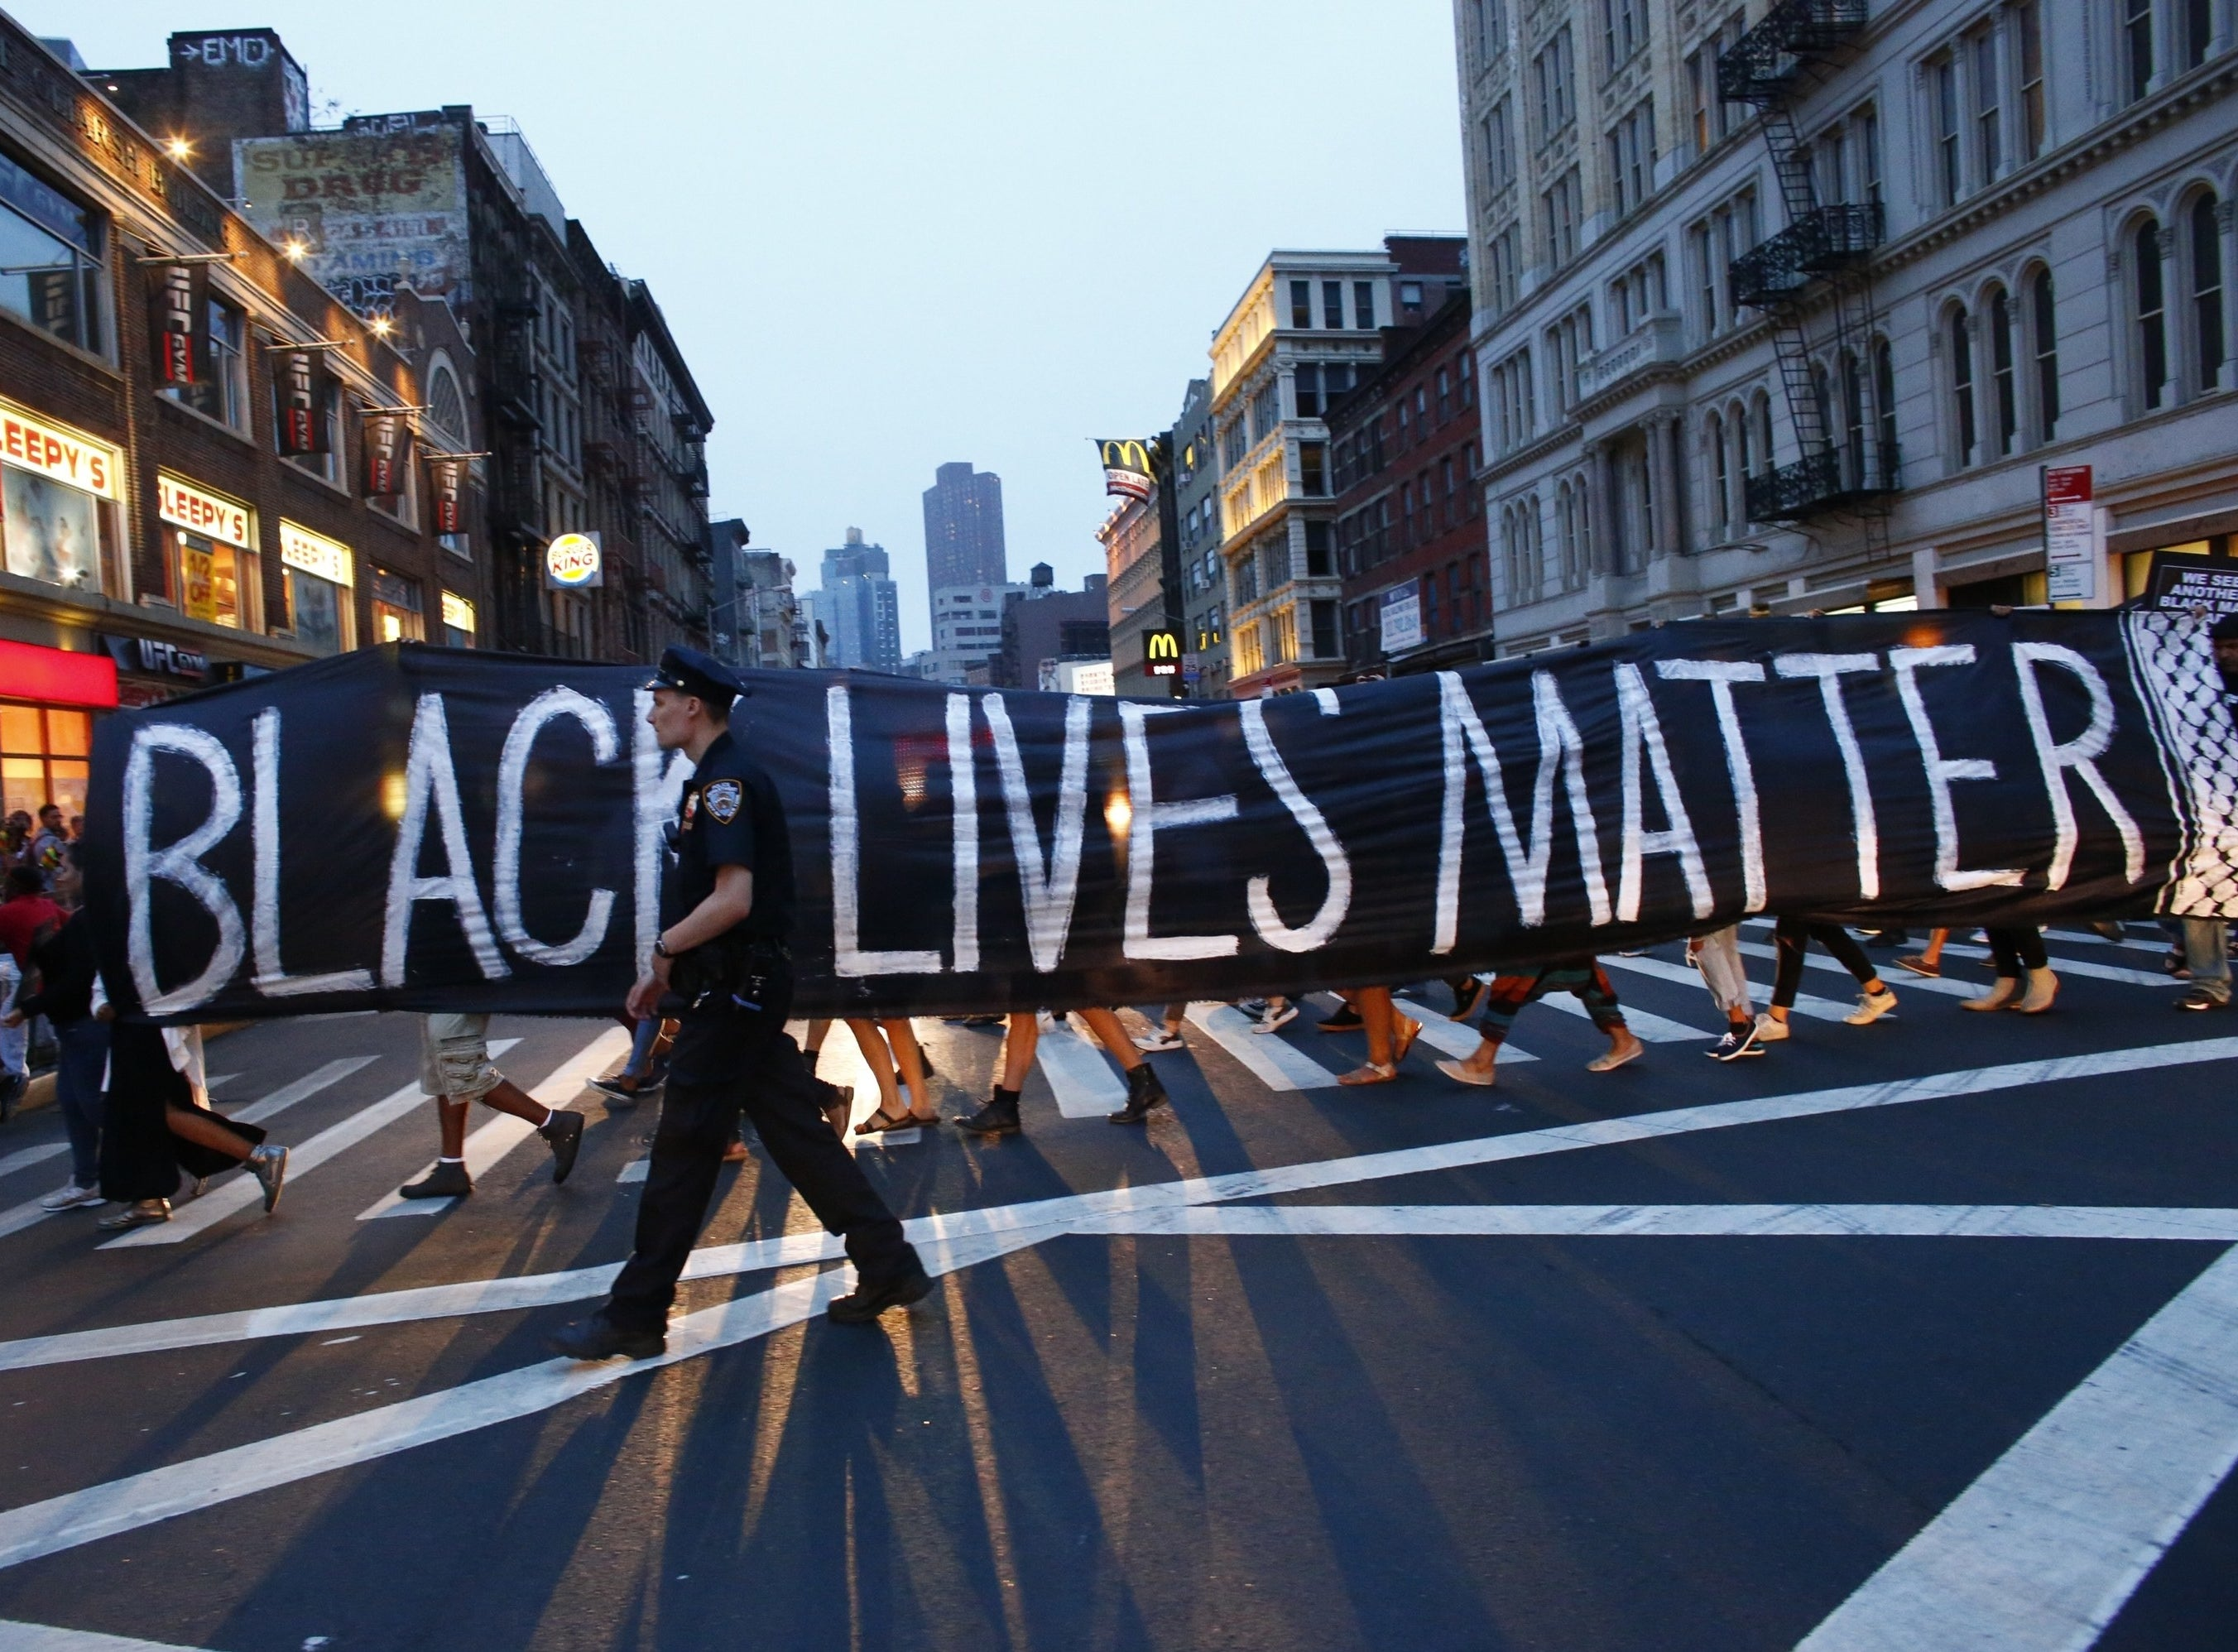 """A large banner that says, """"Black Lives Matter,"""" held by protestors across the length of a street as a police officer walks in front of it"""